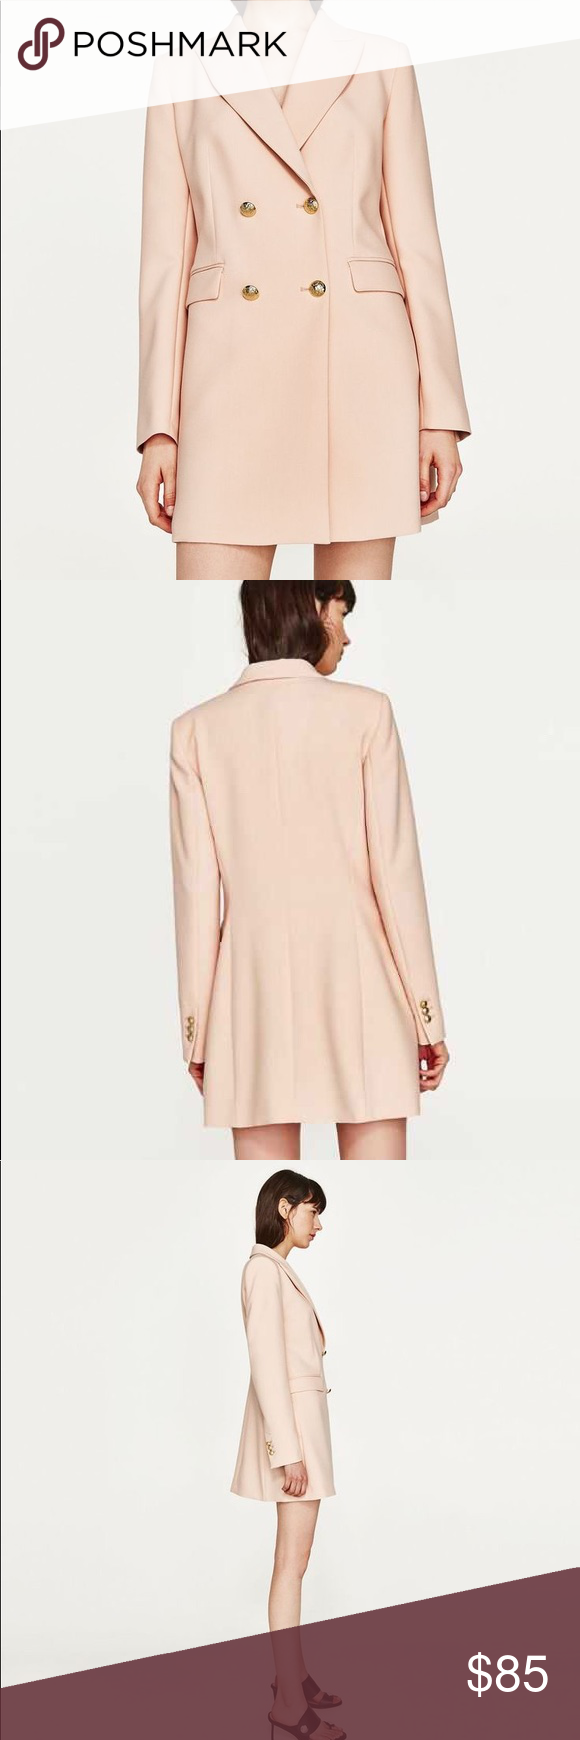 d2e13efb68 NWT ZARA DOUBLE BREASTED FROCK COAT DRESS Beautiful ZARA WOMAN DOUBLE  BREASTED FROCK COAT NUDE PINK